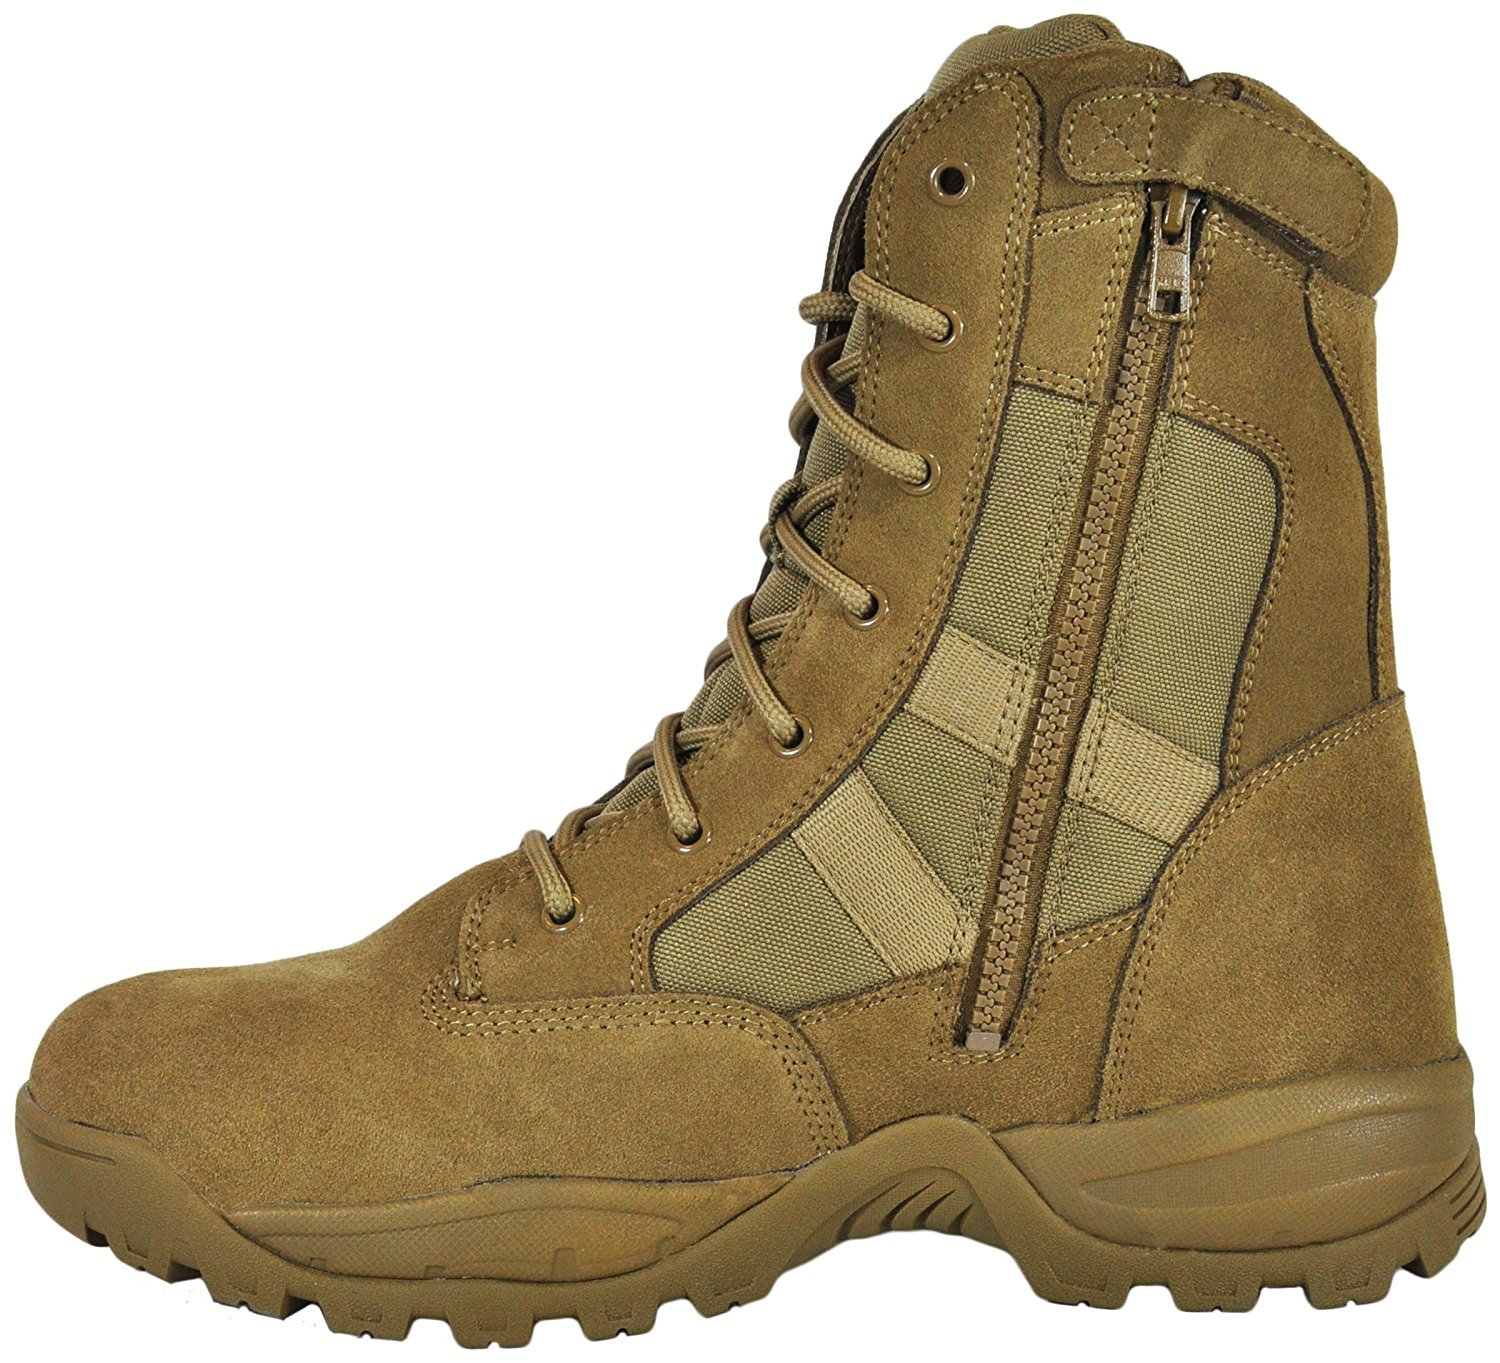 Smith & Wesson Footwear Men's Breach 2.0 Tactical Size Zip Boots, Coyote, 10W by Smith & Wesson (Image #2)